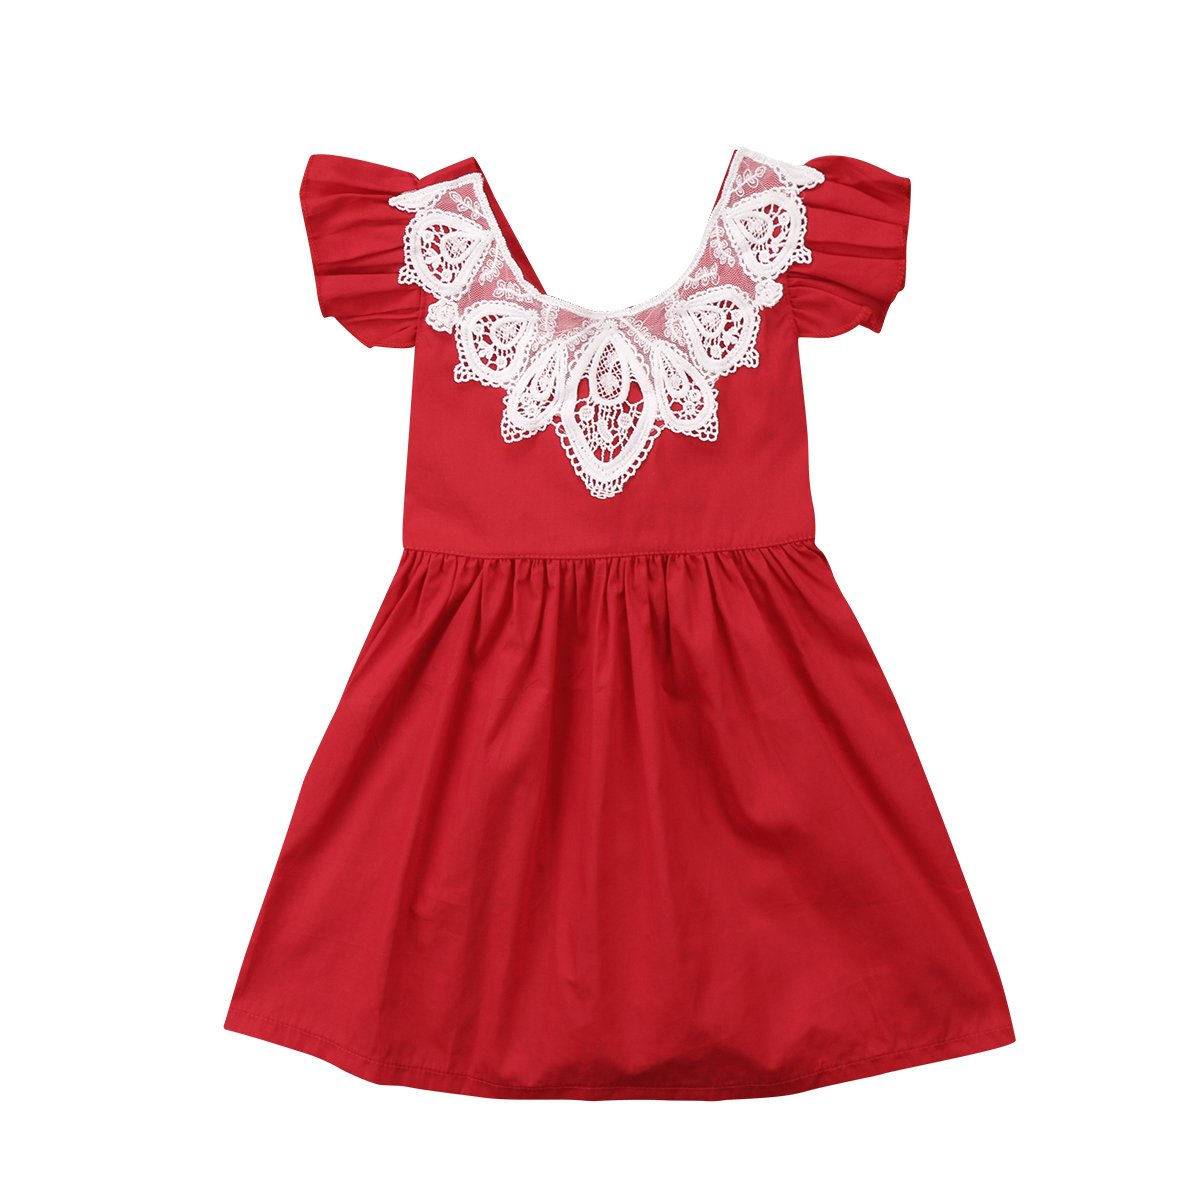 Infant Toddler Flower Girl Romper Lace Collar Cotton Ruffle Sleeve Baby Girls Spring Dresses (Red, 18-24 Months) GVFFHDIQ